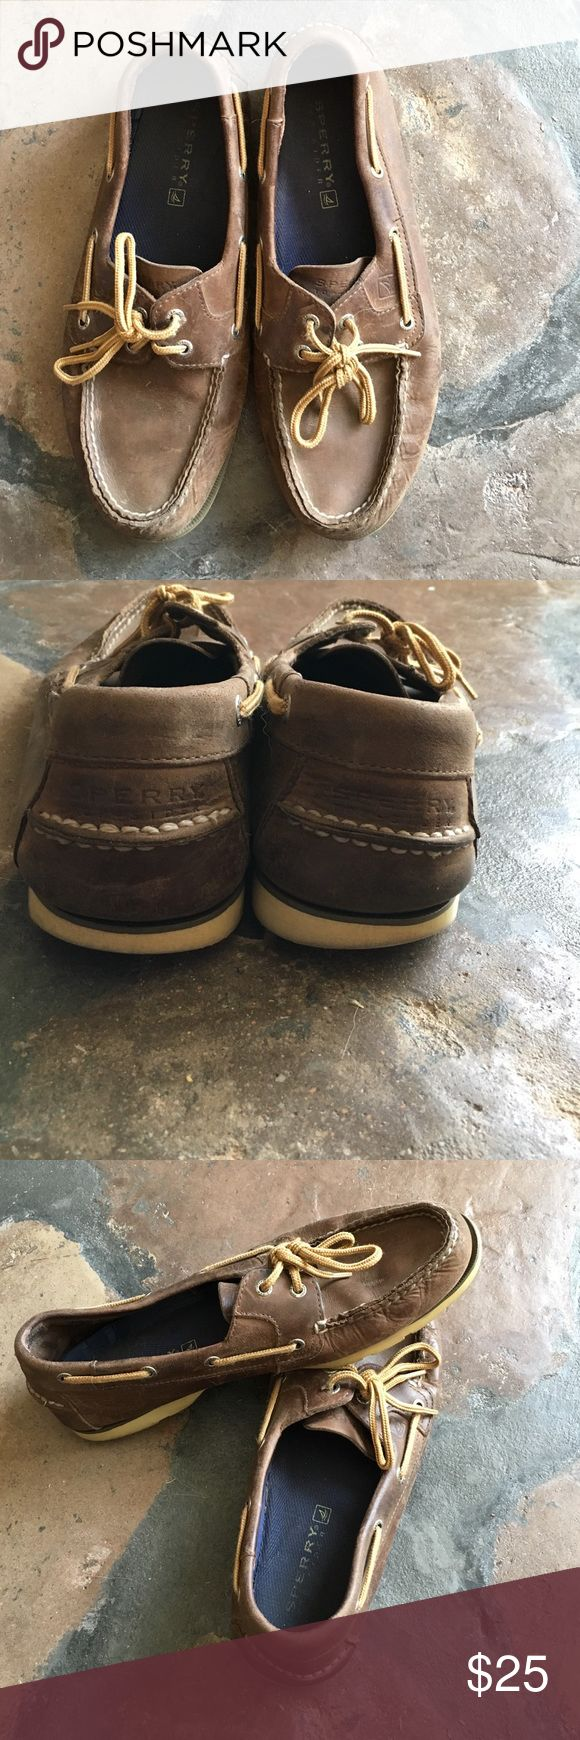 Sperry Top Sider Men's 10 1/2 leather Sperry boat shoes. Worn well but still have years of use! Sperry Top-Sider Shoes Boat Shoes